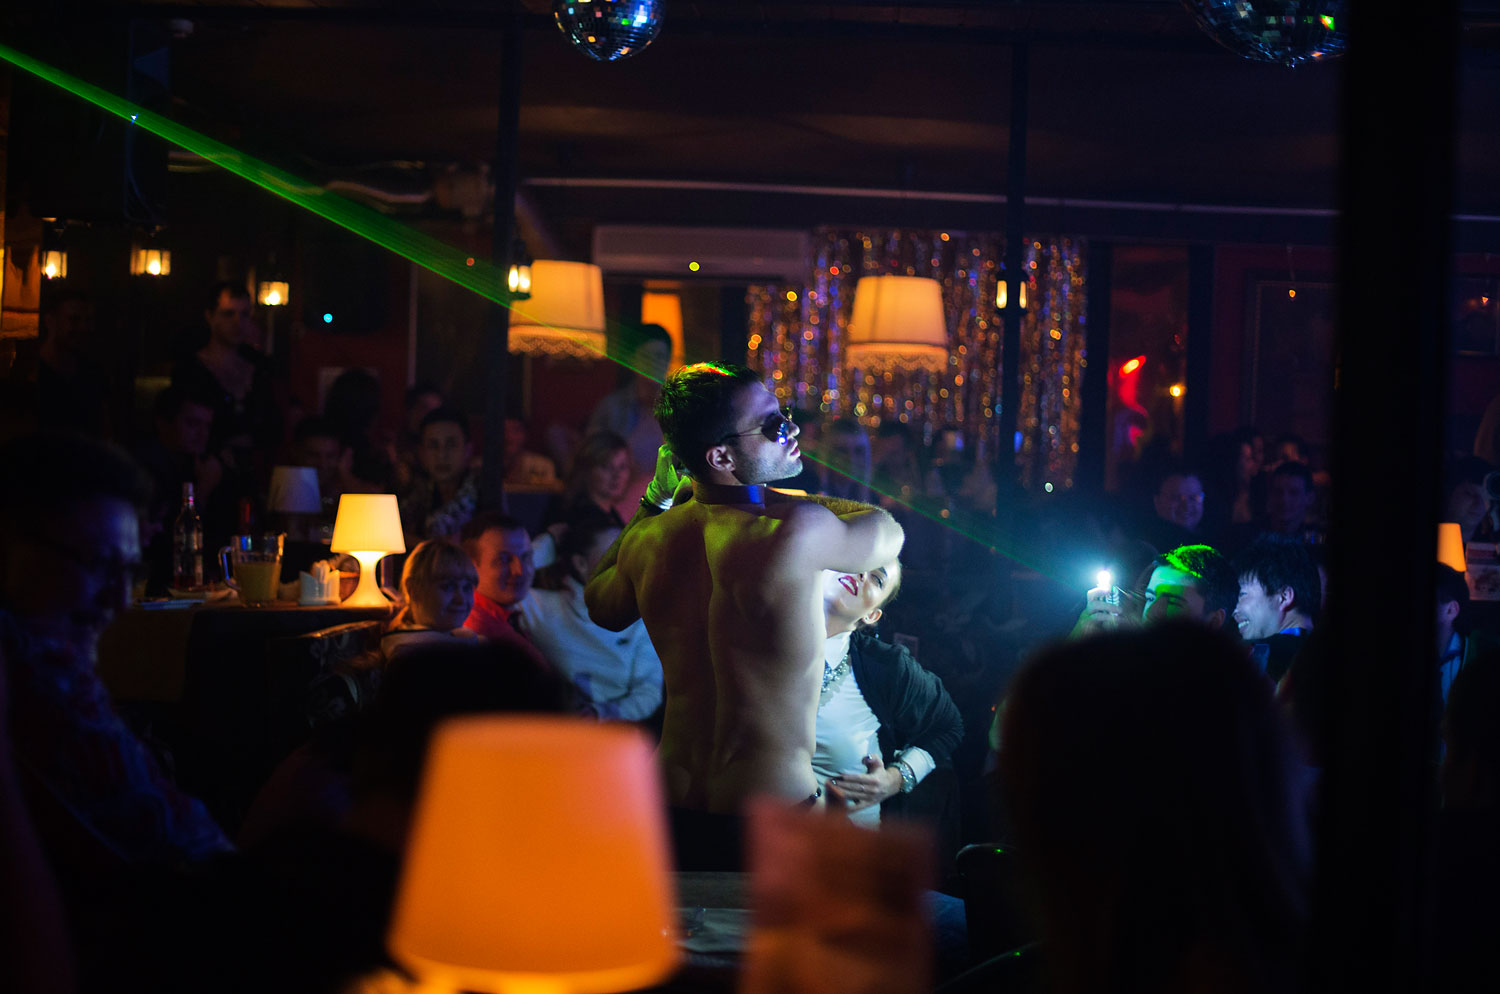 A dancer performs in the crowd at the Mayak cabaret in Sochi, Feb. 8, 2014.